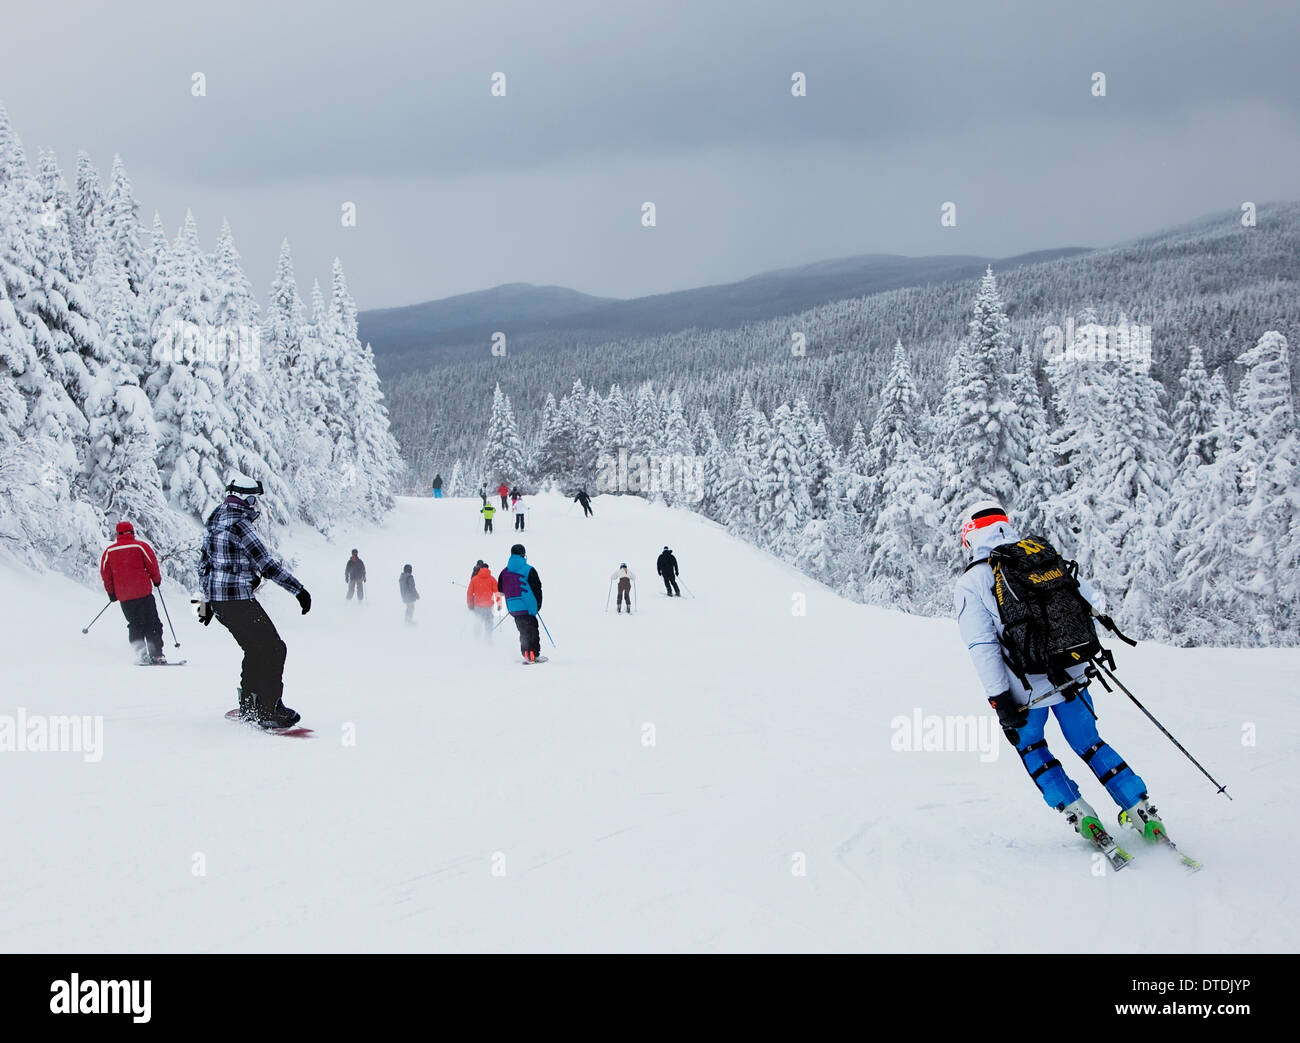 Mont-Tremblant , Quebec, Canada - February 9, 2014: Skiers are sliding down an easy slope at Mont-Tremblant Ski Resort. - Stock Image